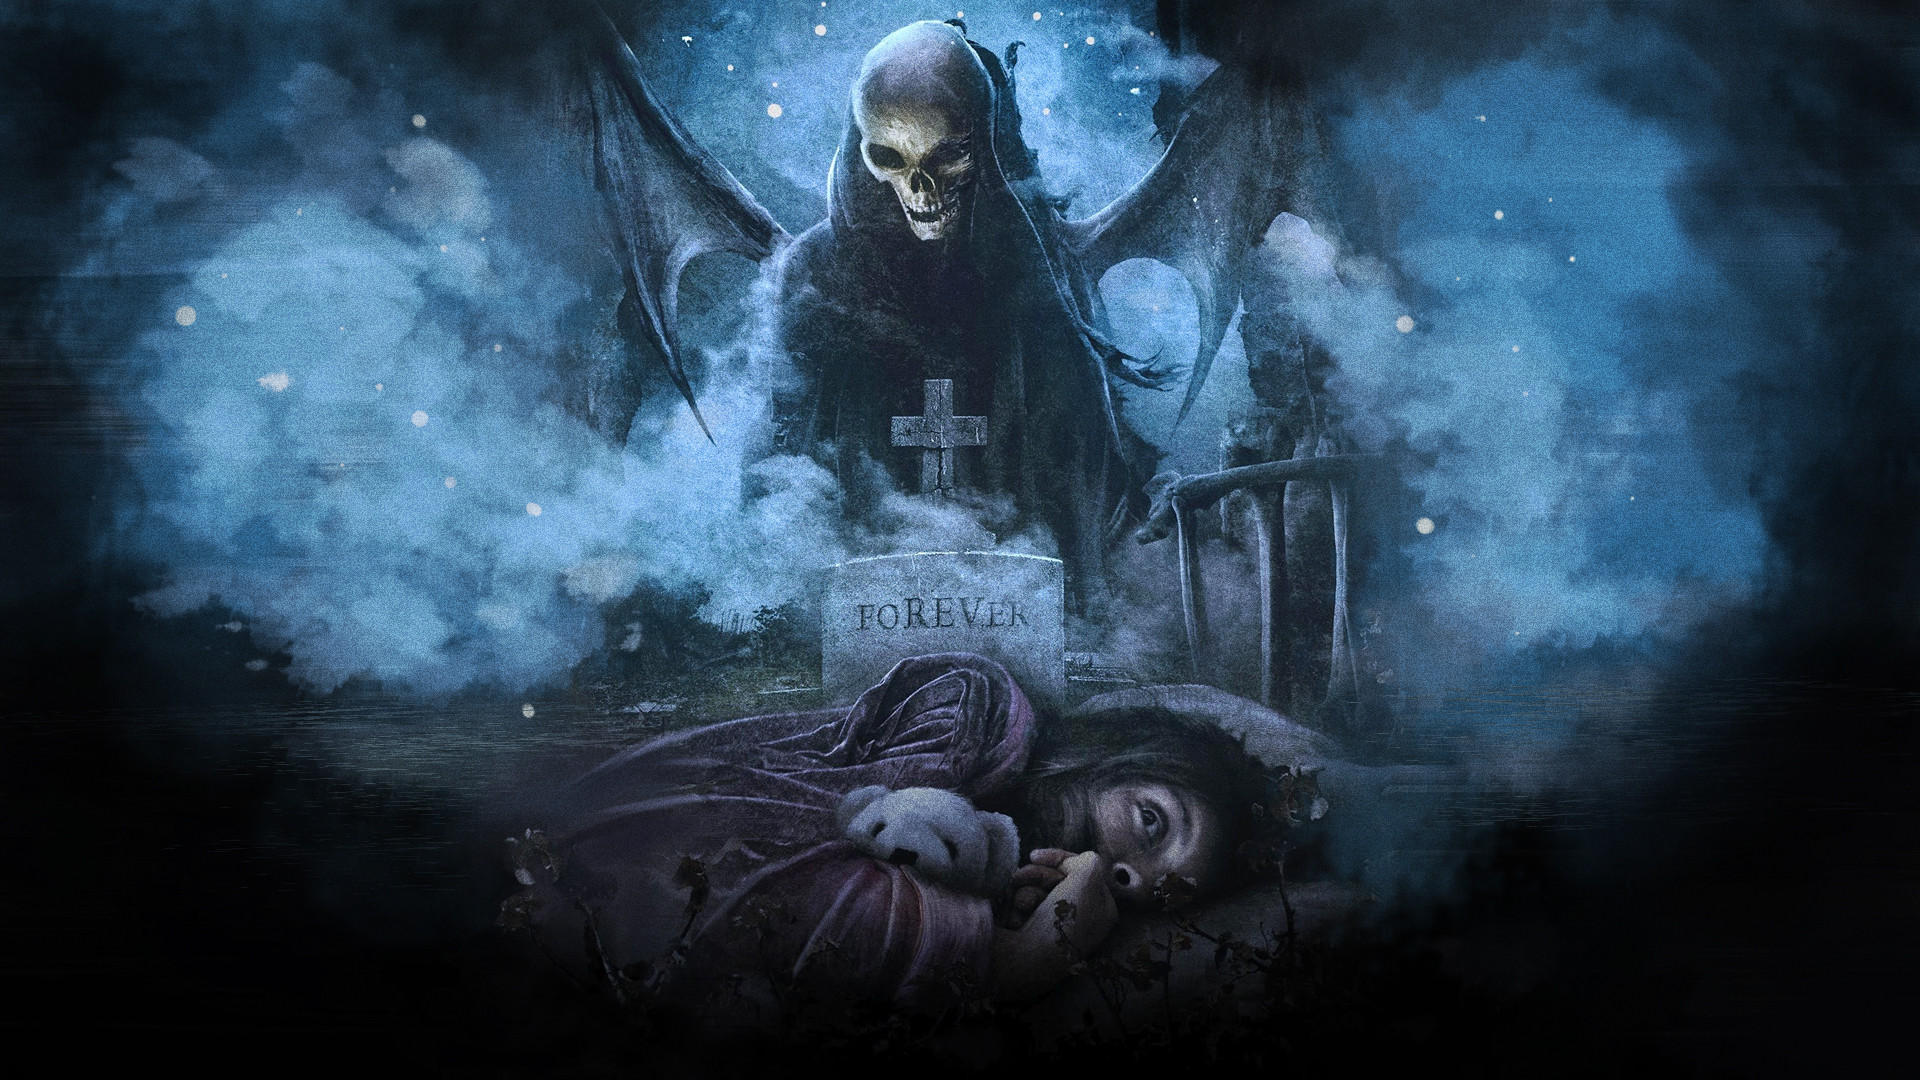 Avenged Sevenfold Nightmare Wallpapers Hd Resolution